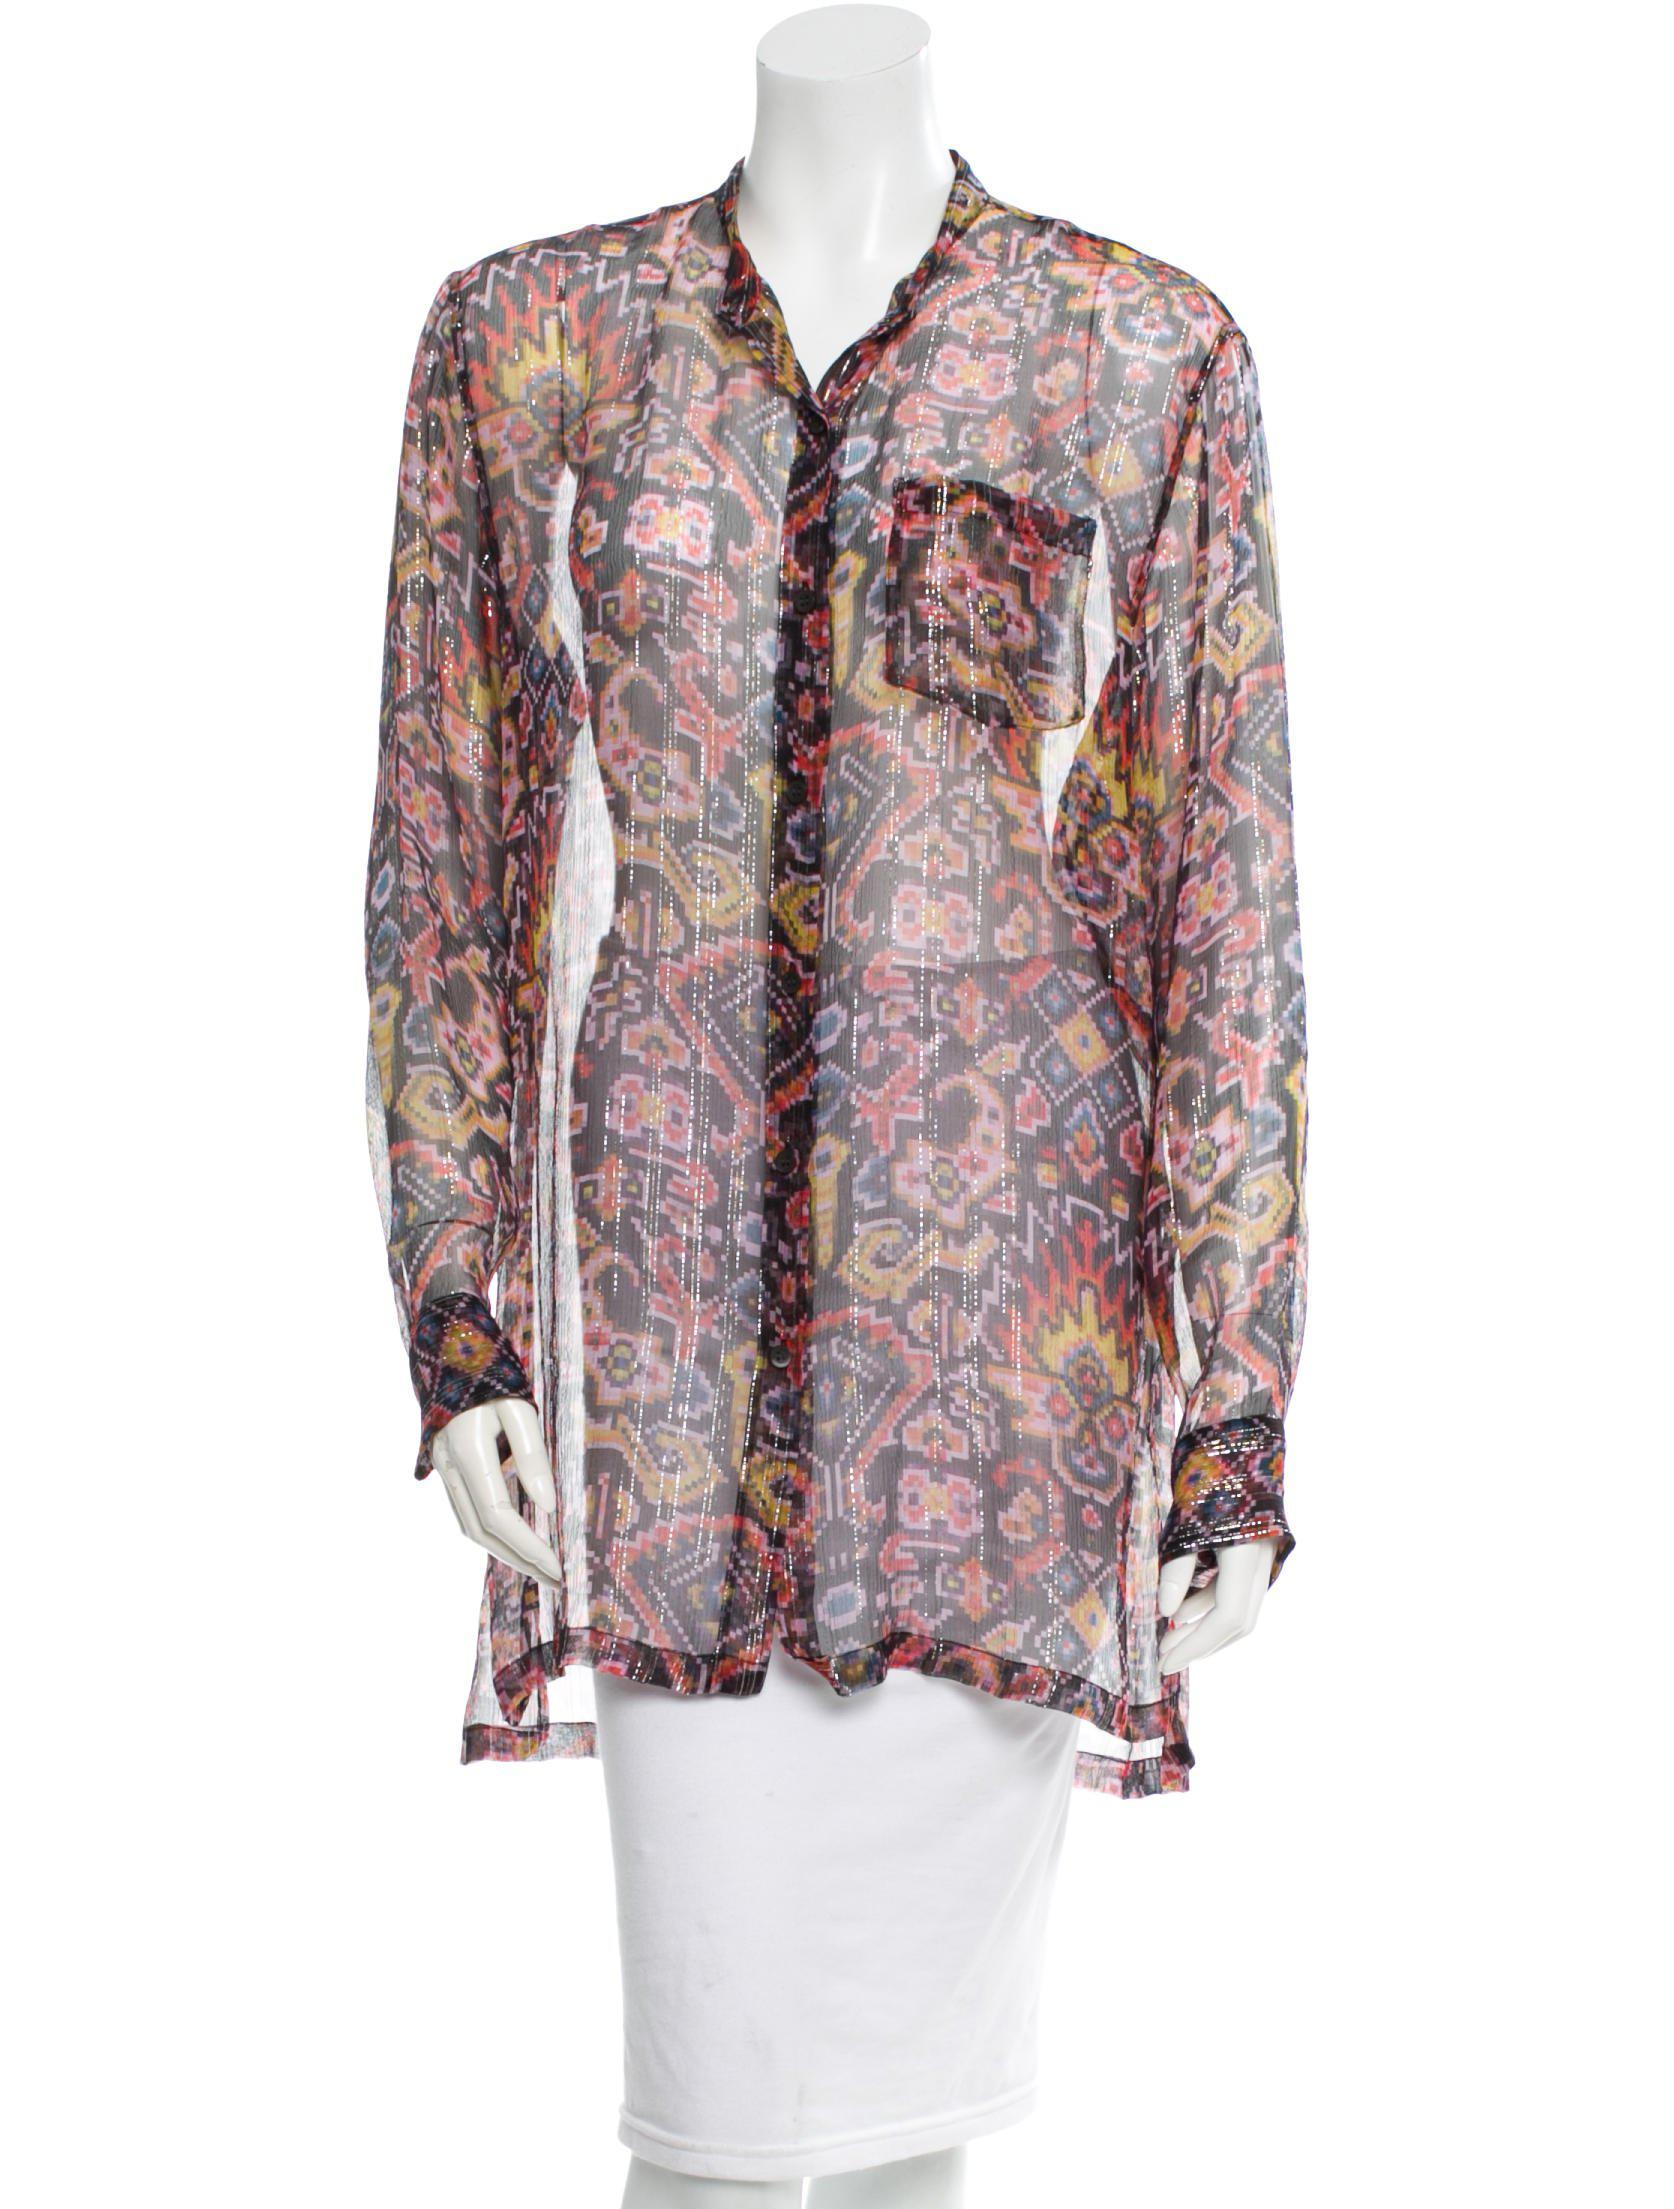 Dries Van Noten Sheer Silk Blouse w/ Tags Discount Best Prices Outlet Locations For Sale Huge Range Of Discount Fast Delivery w3fvuIP7Mp